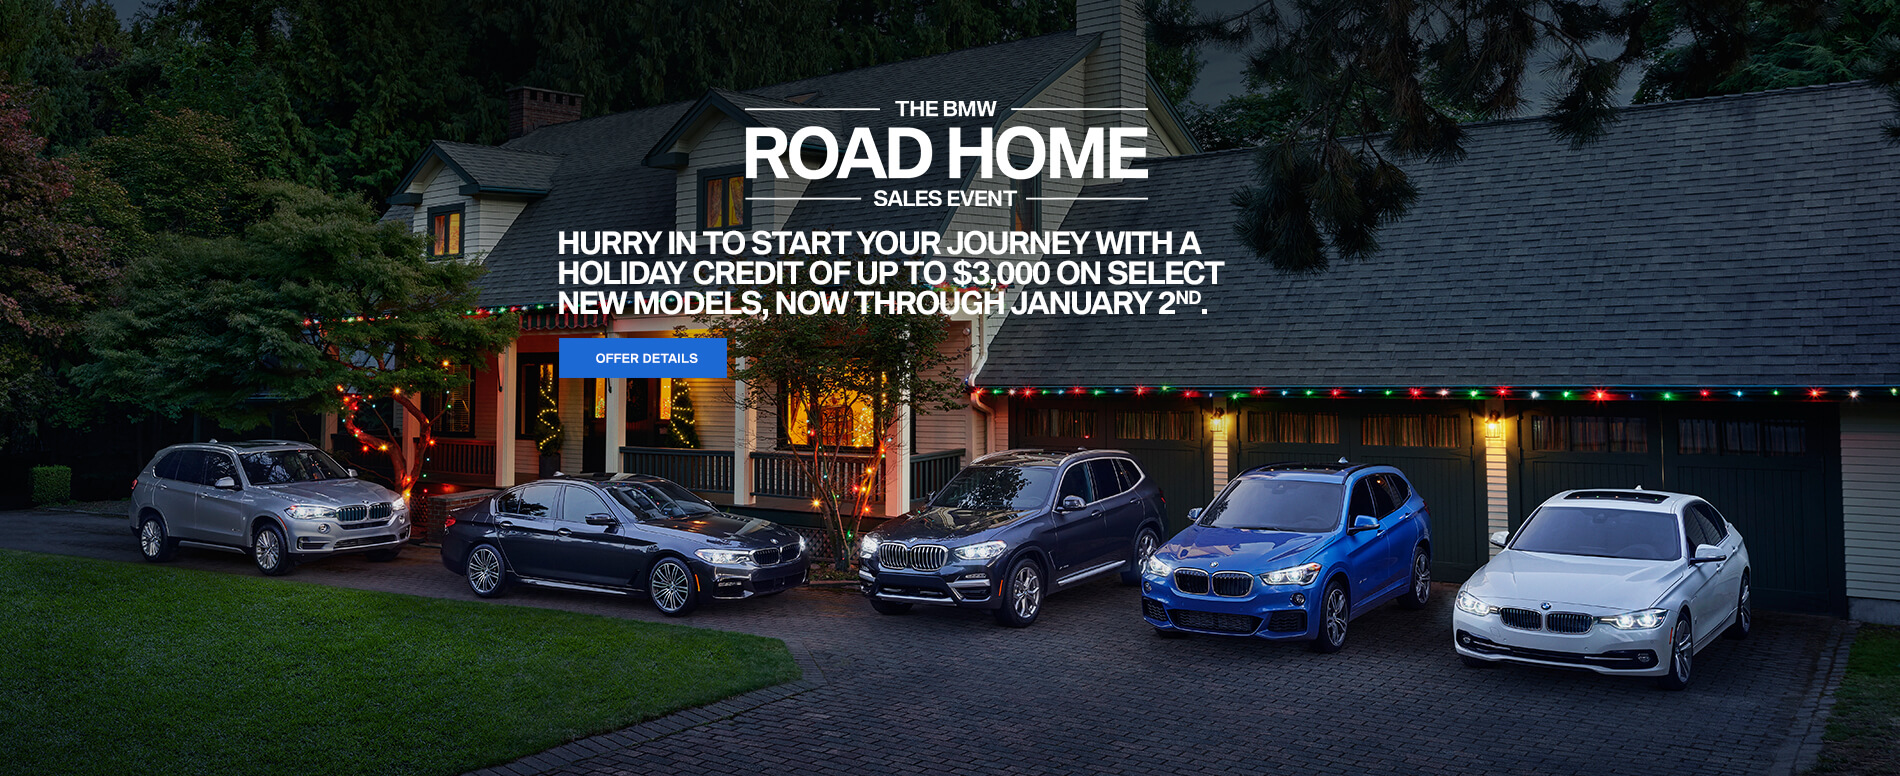 BMW Holiday Credit of up to $3,000 on select new models